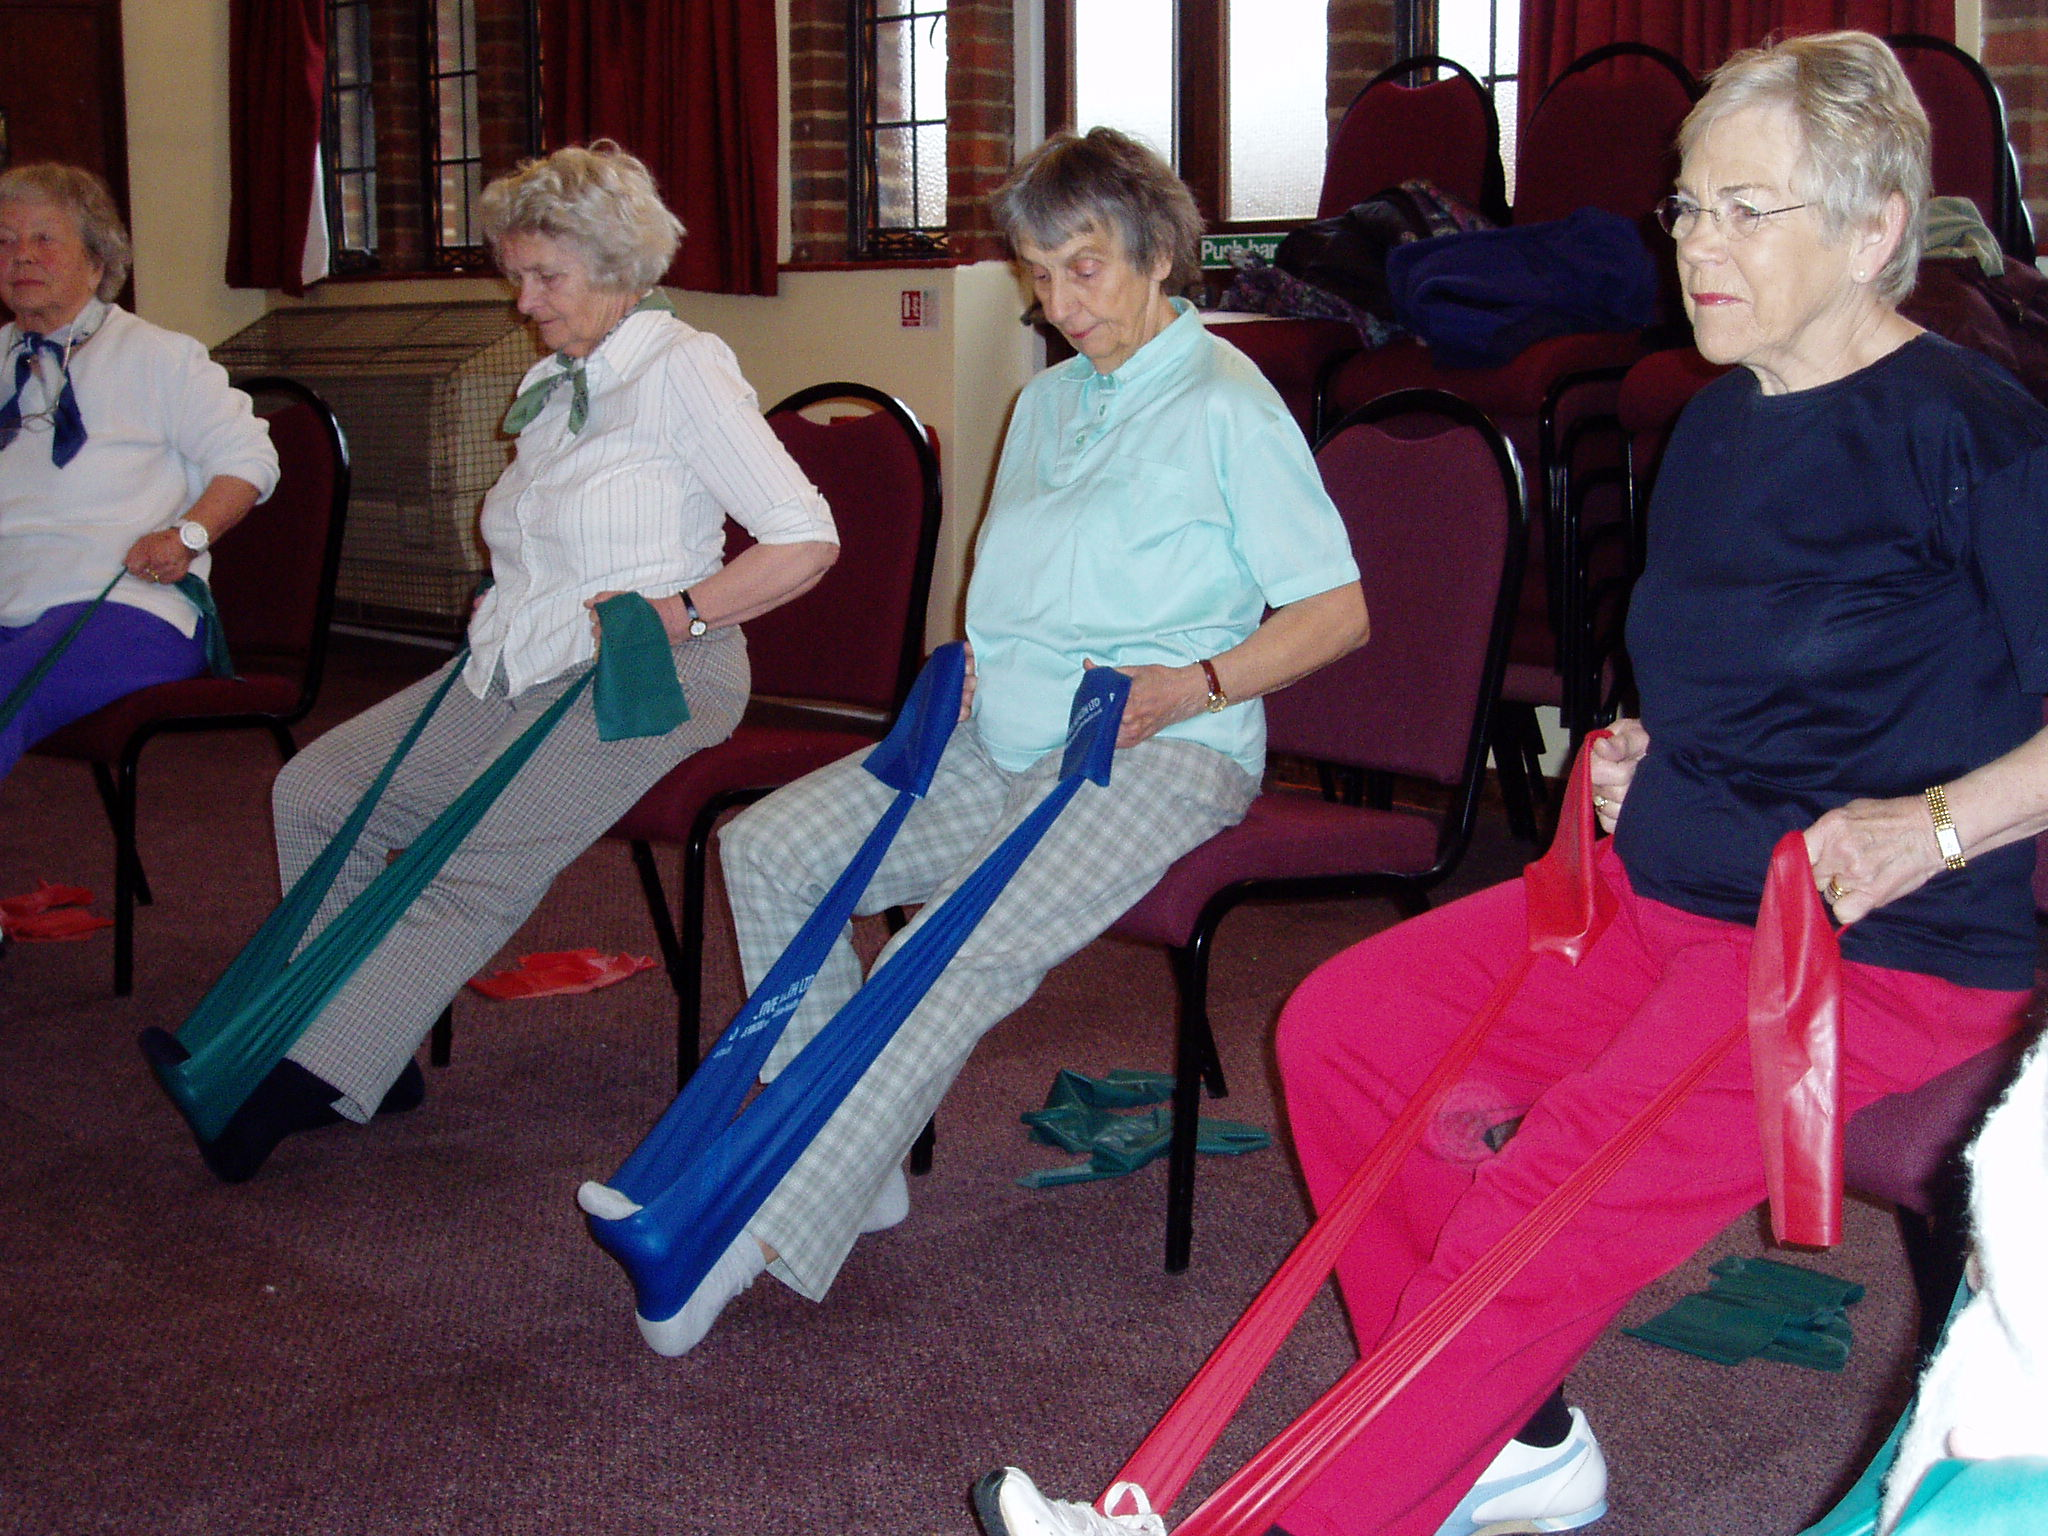 OTAGO & CHAIR BASED EXERCISE CLASSES HOME FITNESS Hertfordshire